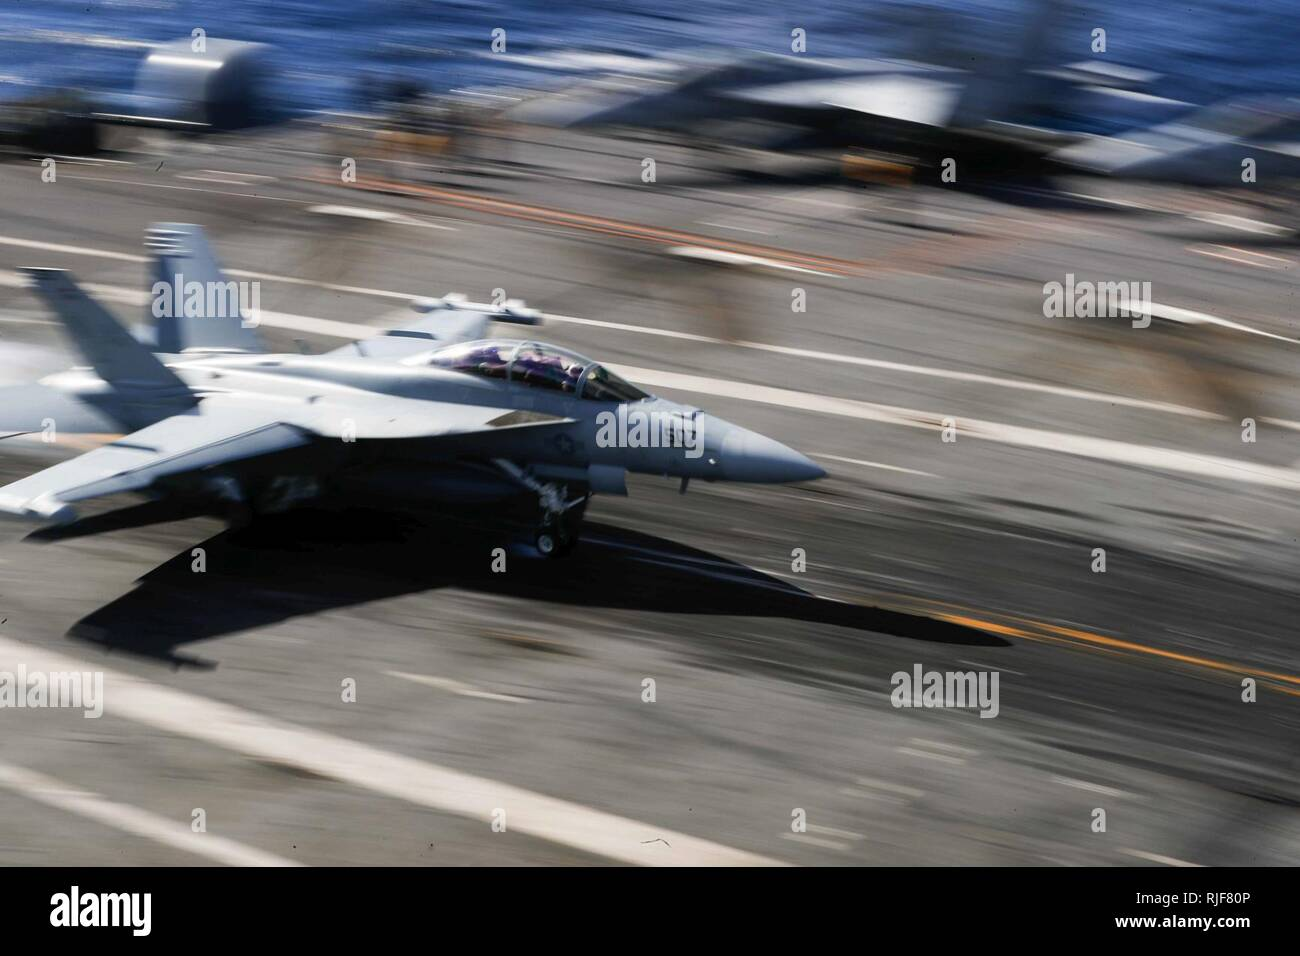 ATLANTIC OCEAN (Jan. 31, 2018) An F/A-18F Super Hornet assigned to the 'Gladiators' of Strike Fighter Squadron (VFA) 106 lands on the flight deck of the Nimitz-class carrier USS Abraham Lincoln (CVN 72). - Stock Image